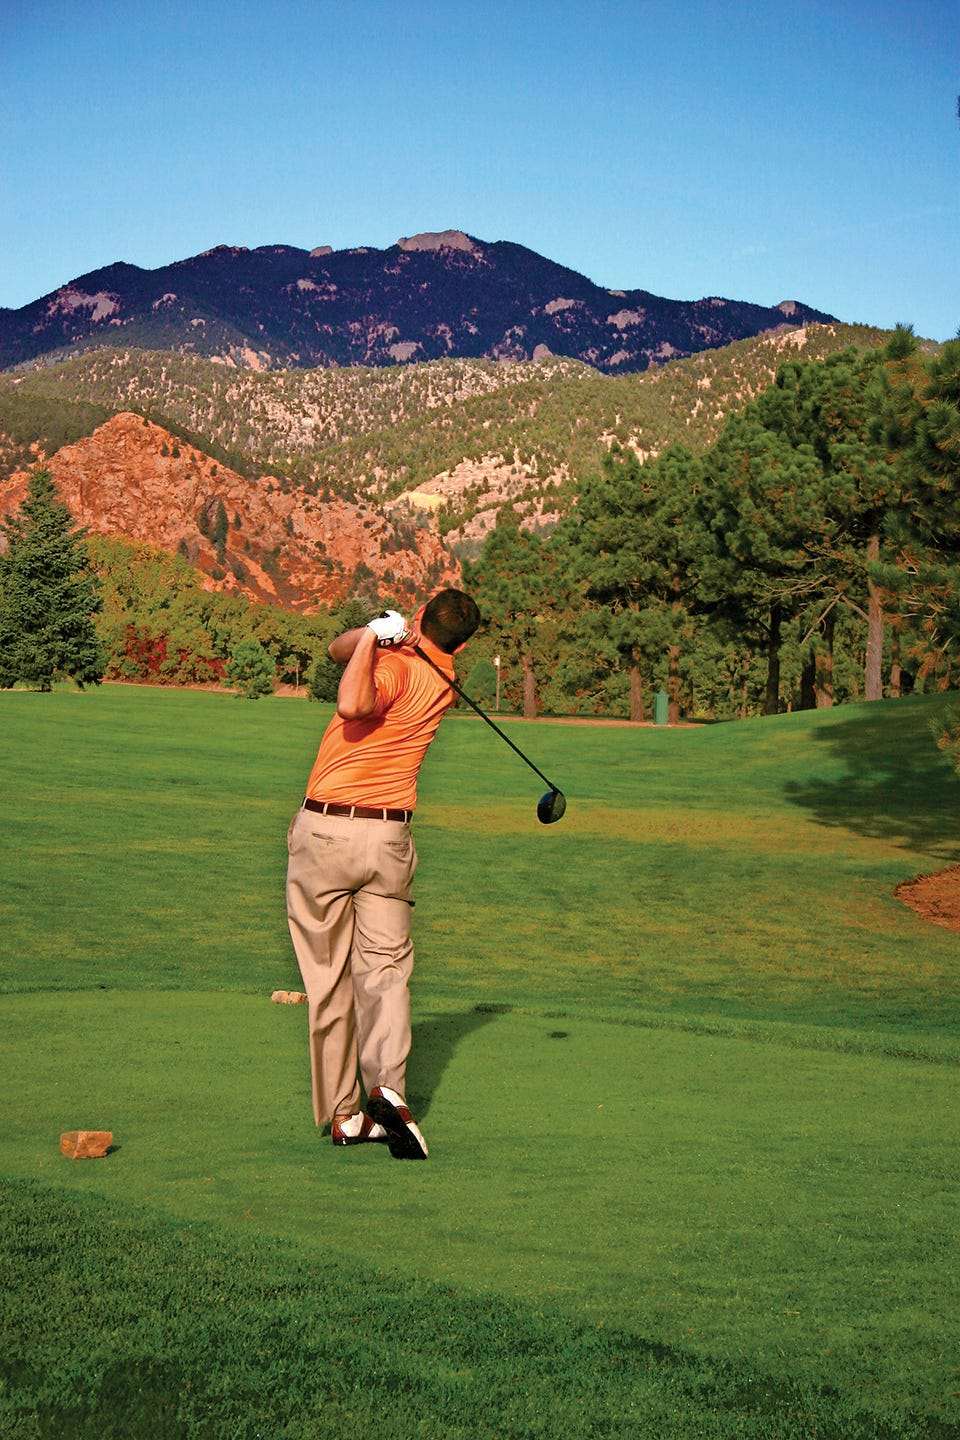 Discussion on this topic: How to Play Environmentally Friendly Golf, how-to-play-environmentally-friendly-golf/